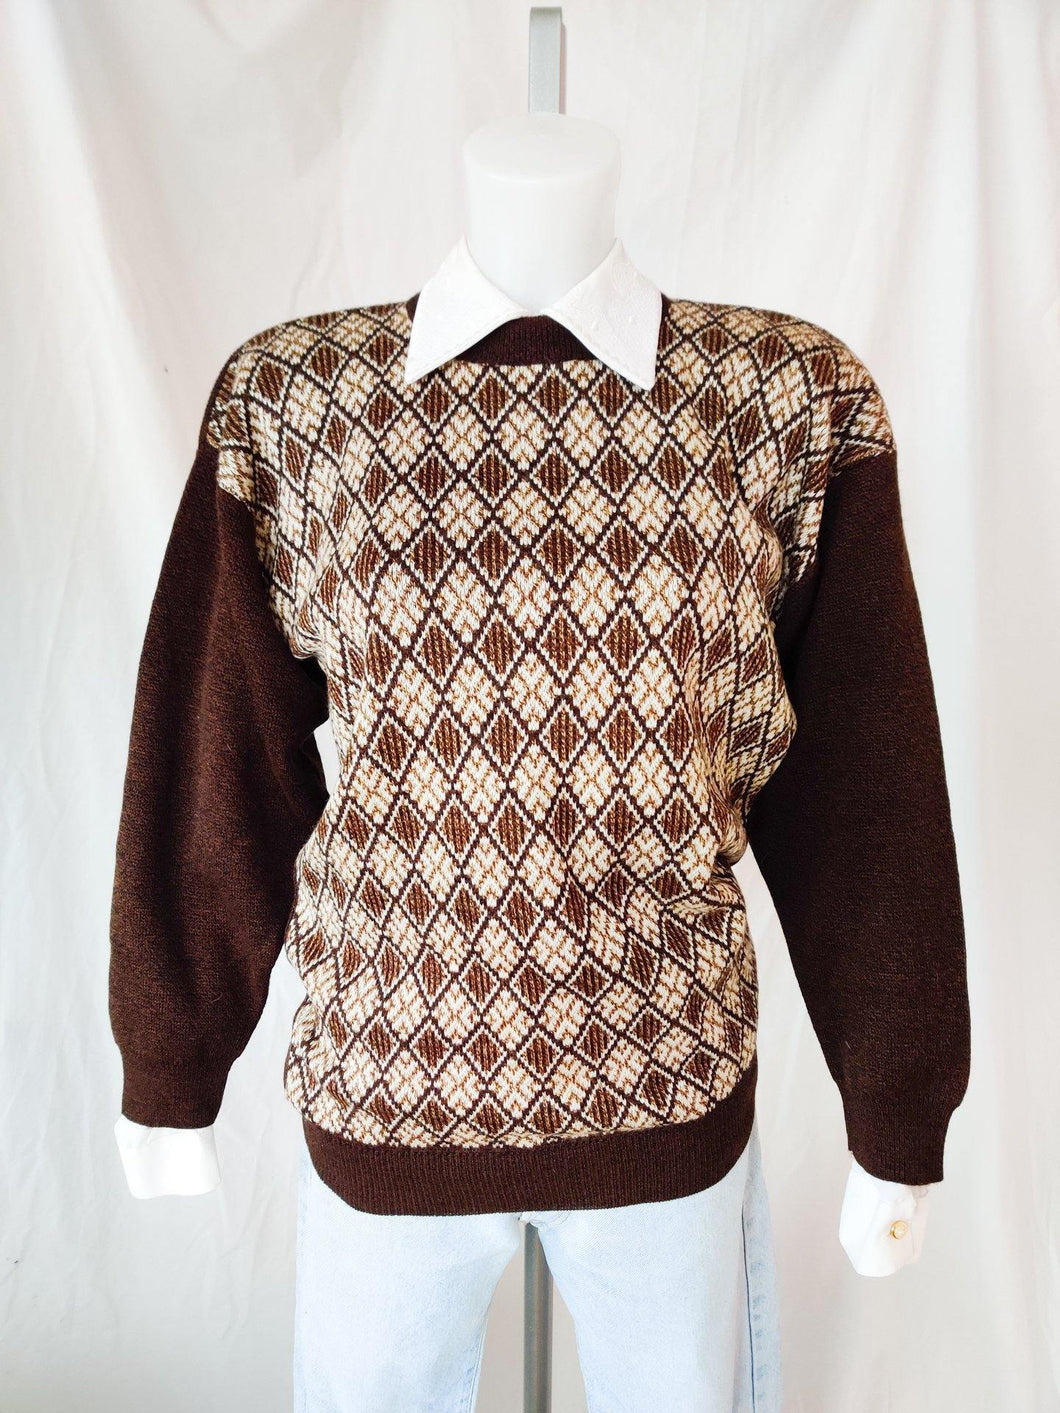 Vintage brown patterned knit jumper